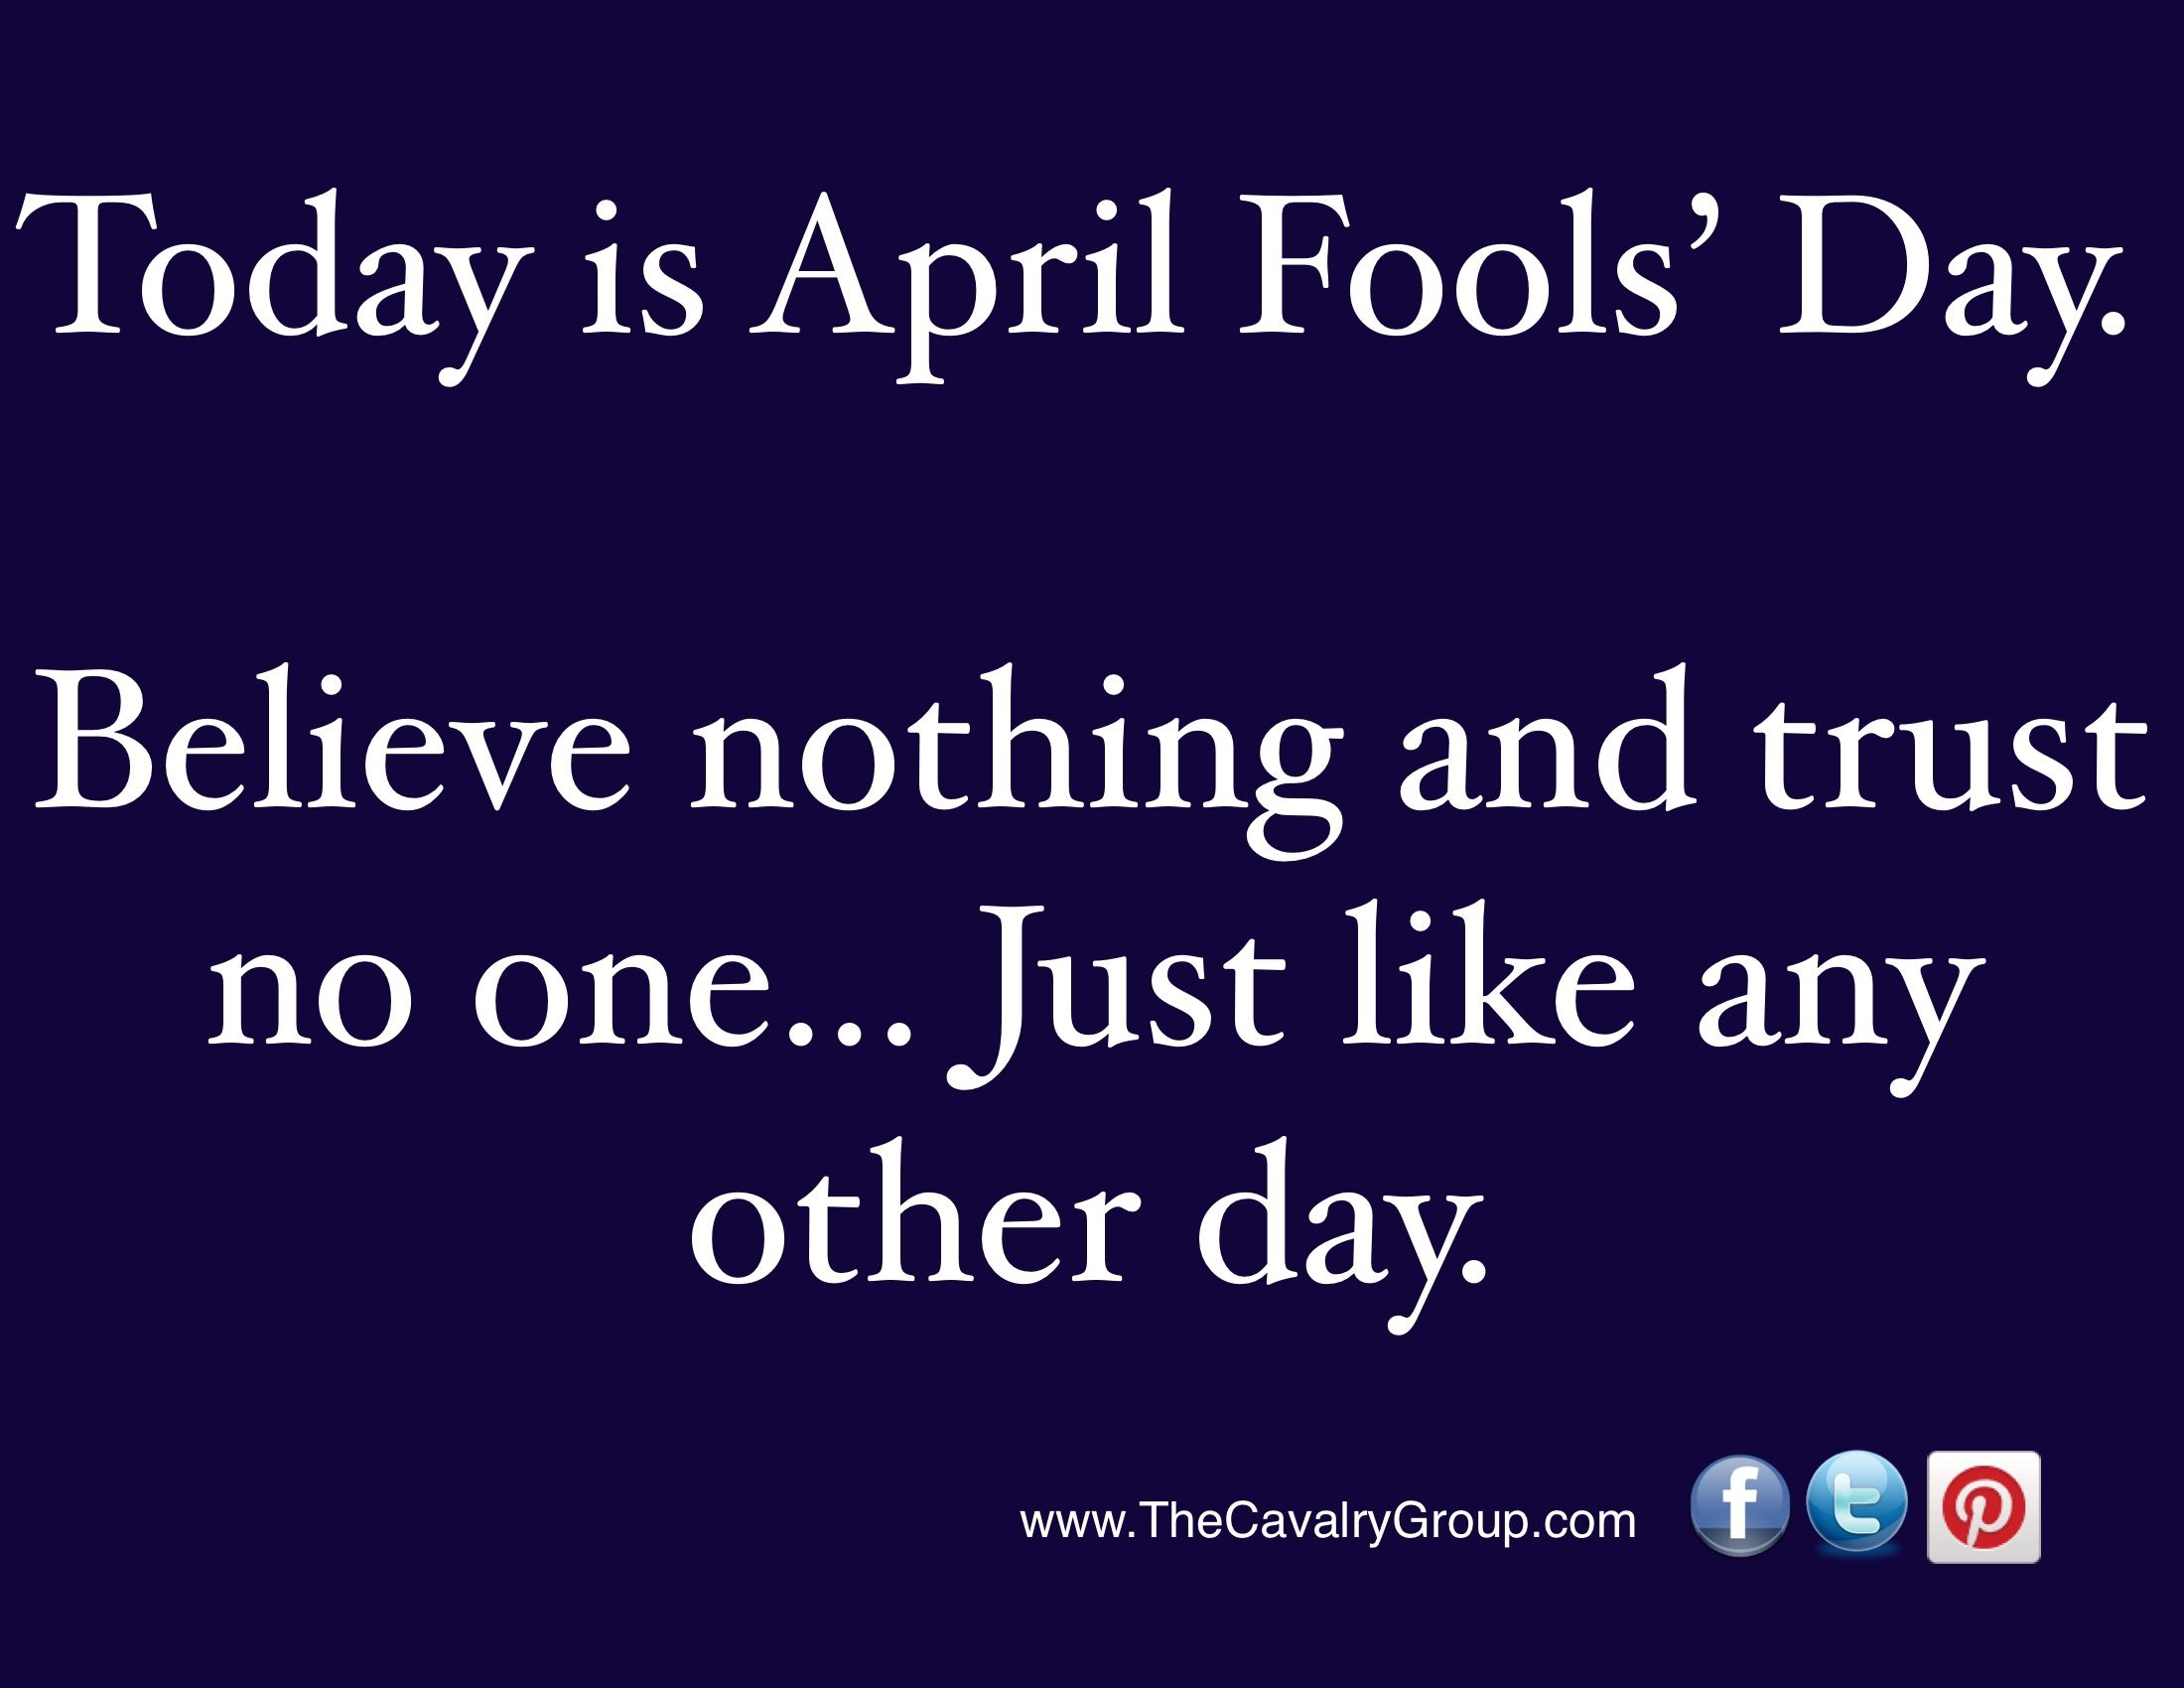 Rules for April Fools' Day | The Cavalry Group | Pinterest